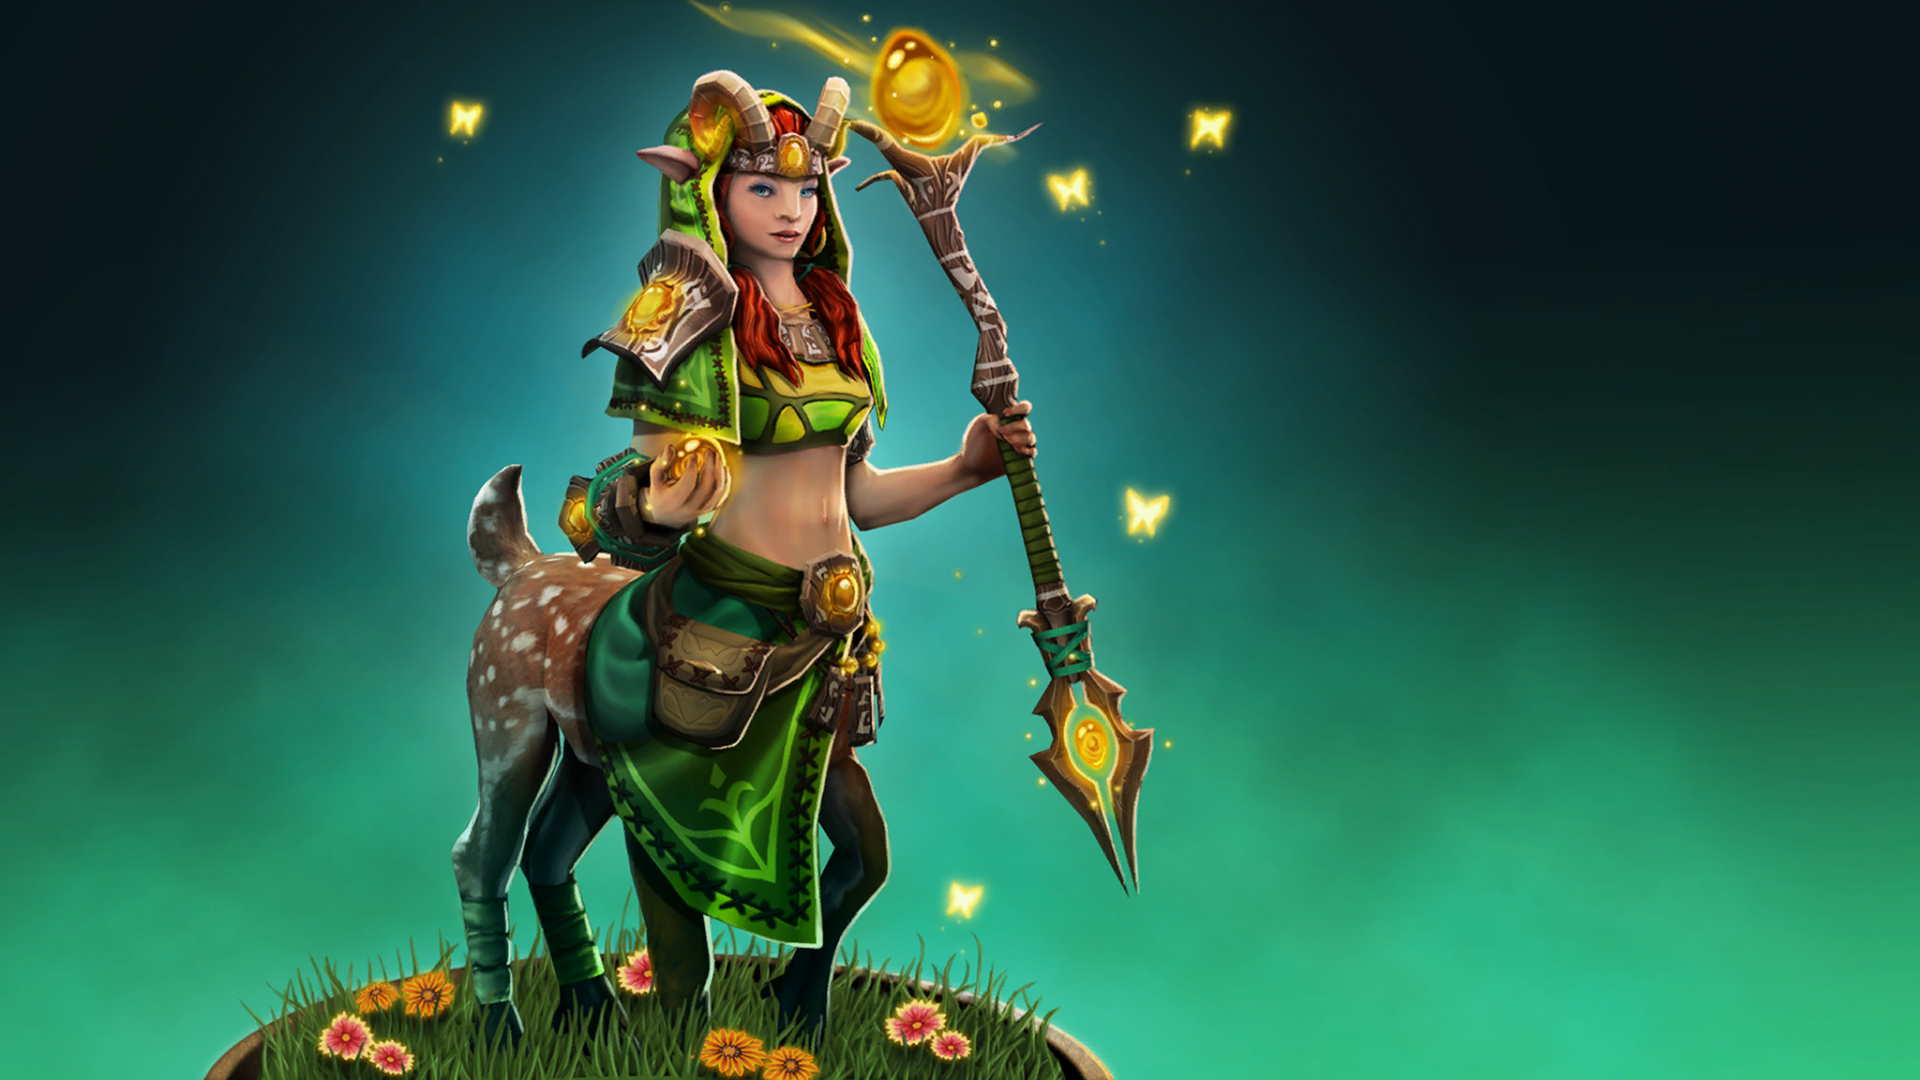 General 1920x1080 Dota 2 Loading screen Enchantress (Dota)